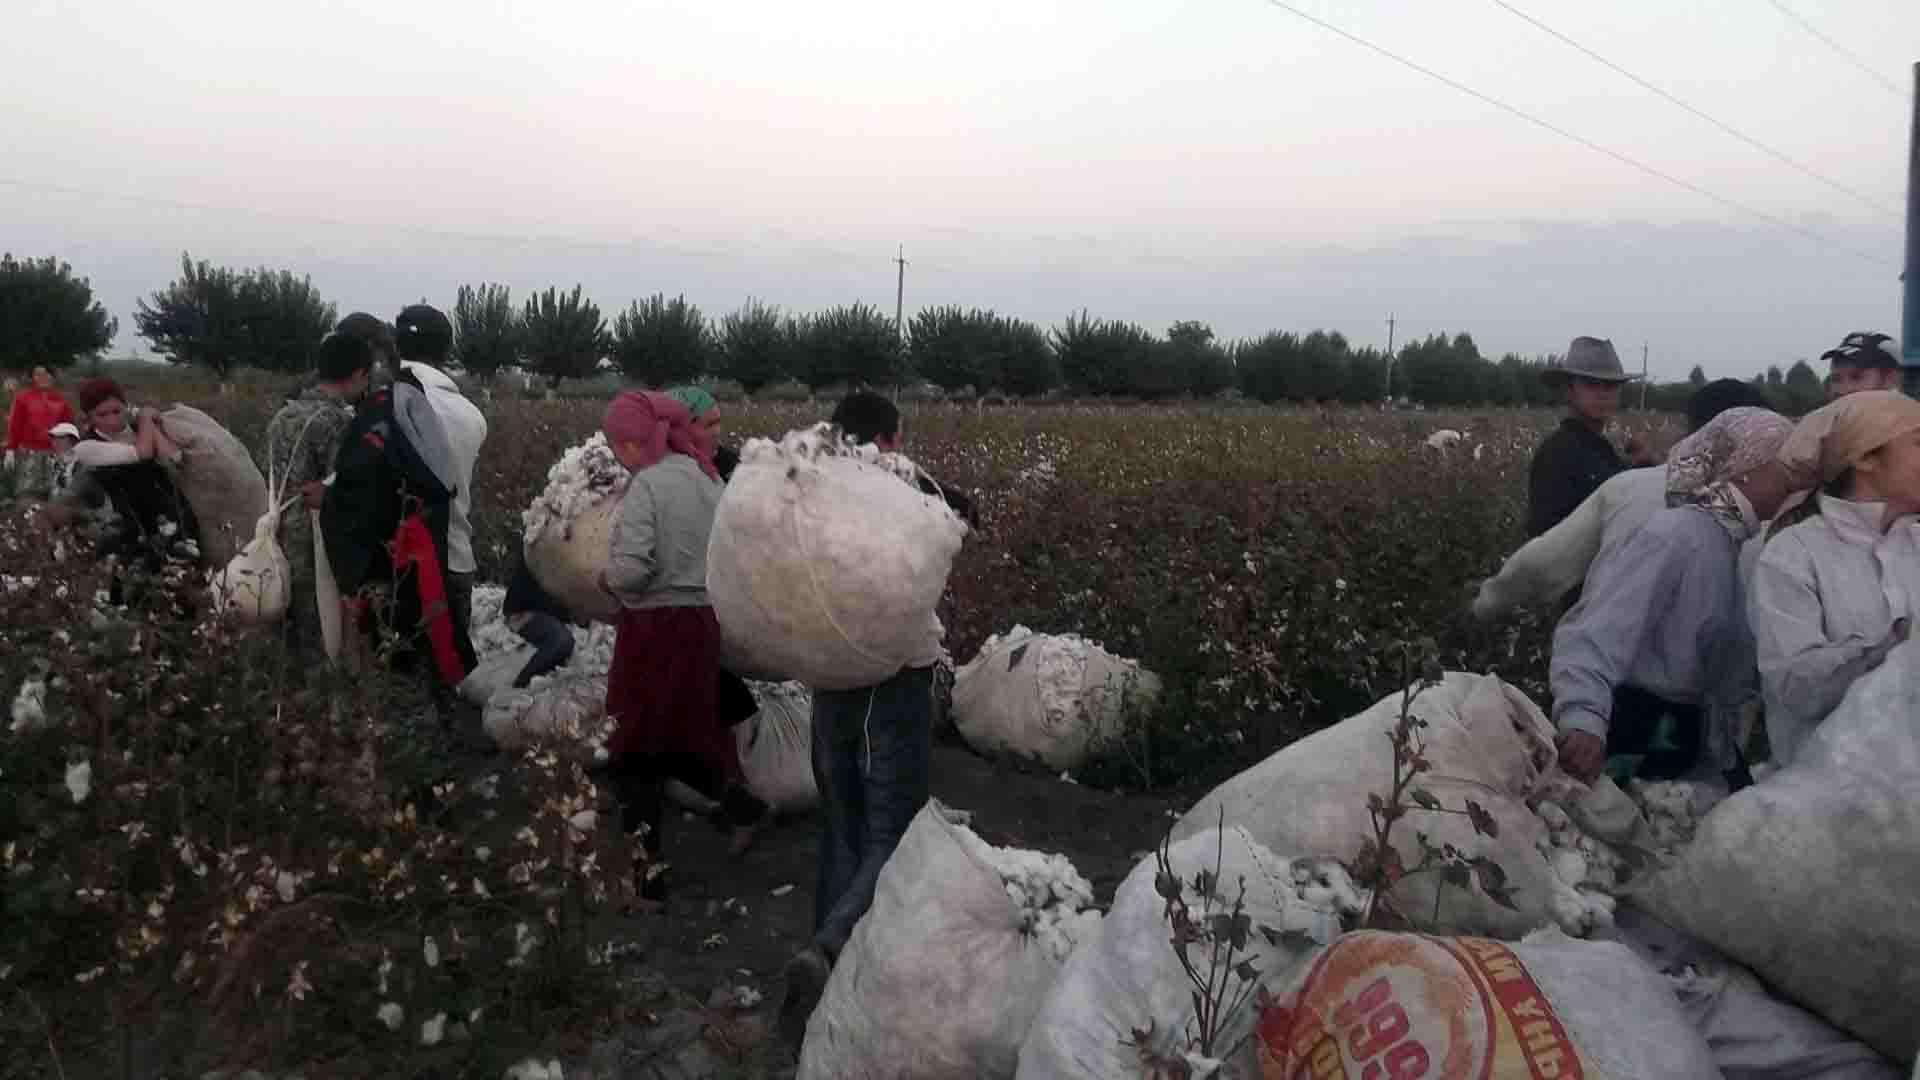 The Uzbek-German Forum for Human Rights Preliminary Report on Forced Labor During Uzbekistan's 2014 Cotton Harvest